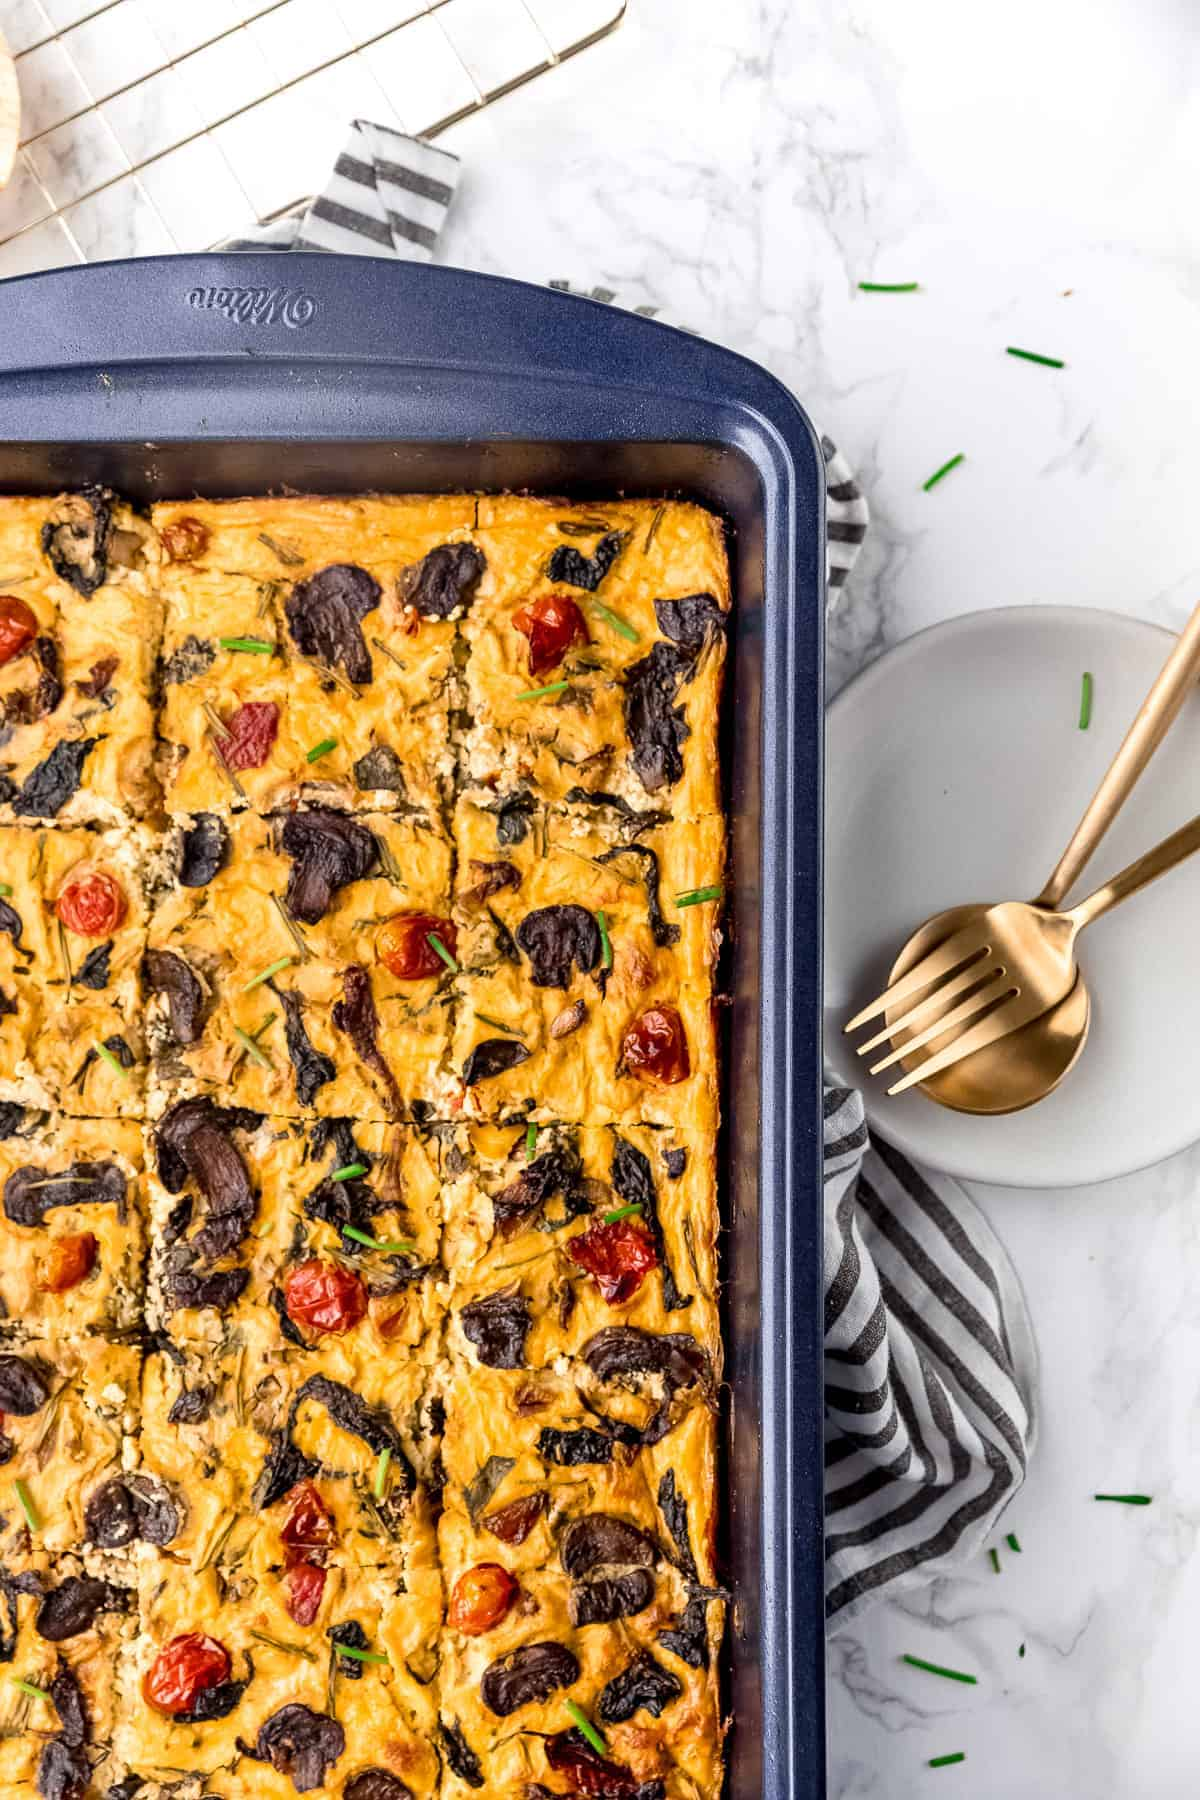 Frittata on a sheet pan sliced with plate with utensils beside it.